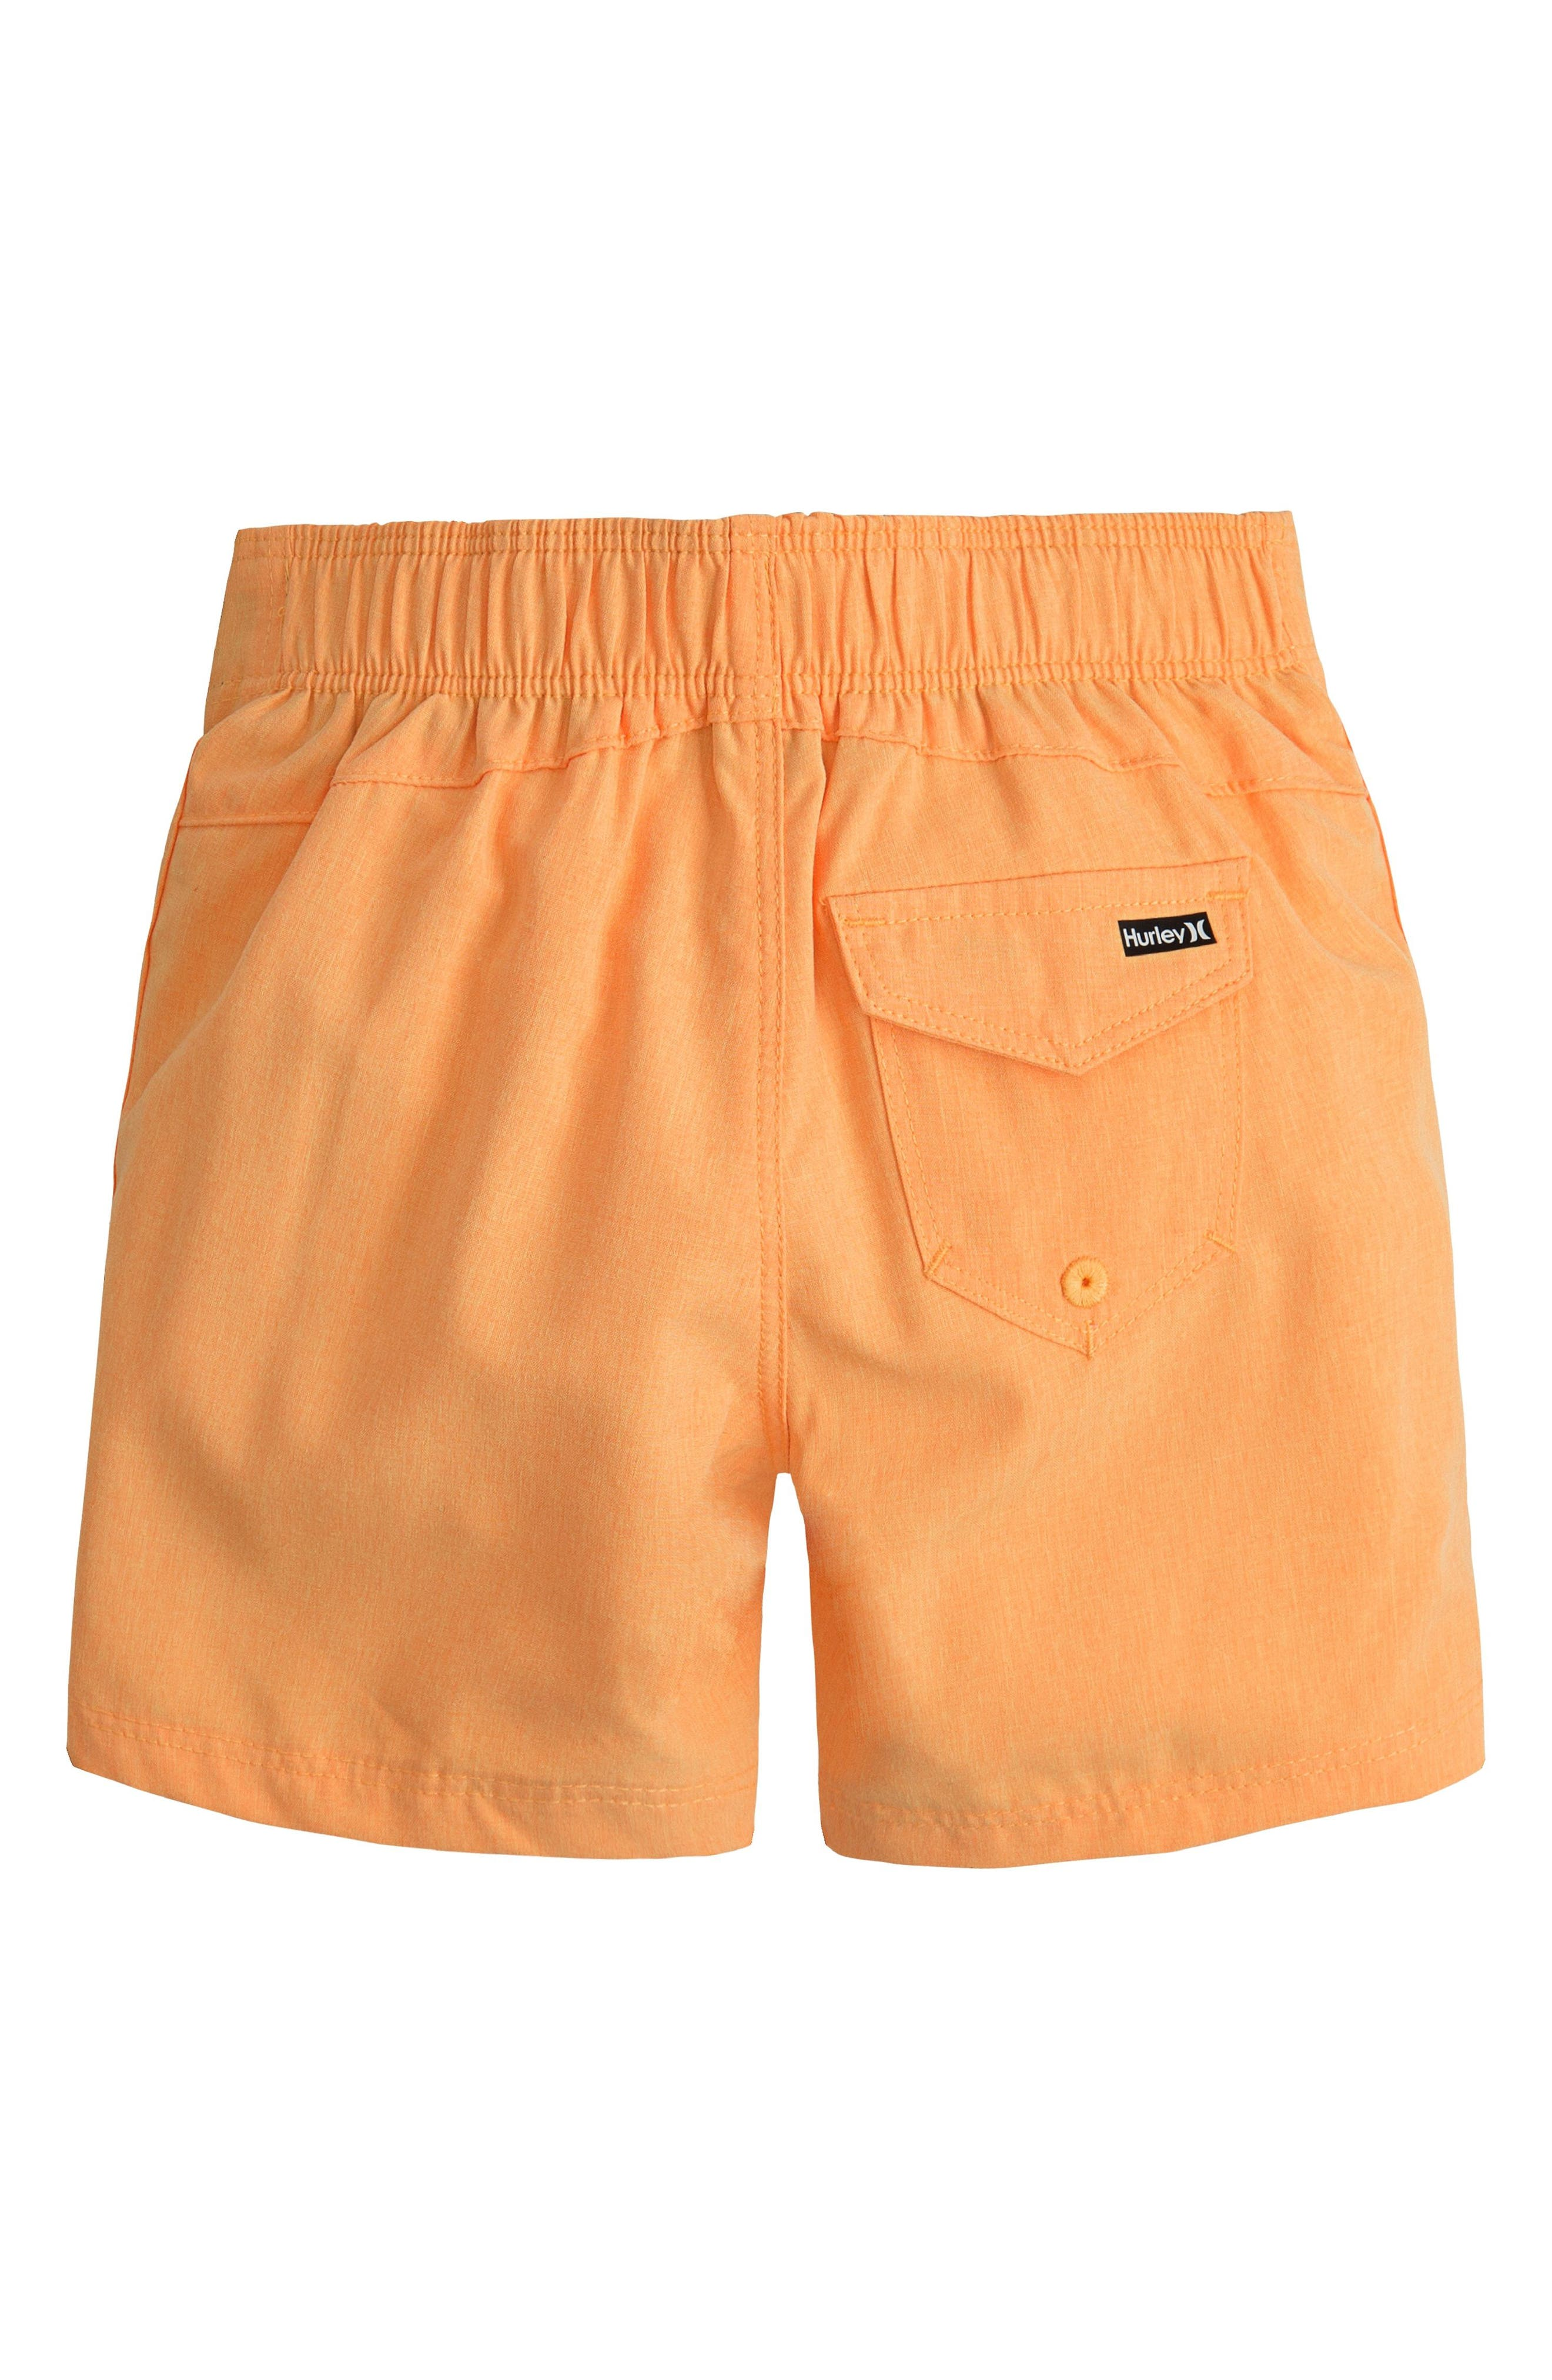 One and Only Dri-FIT Board Shorts,                             Alternate thumbnail 7, color,